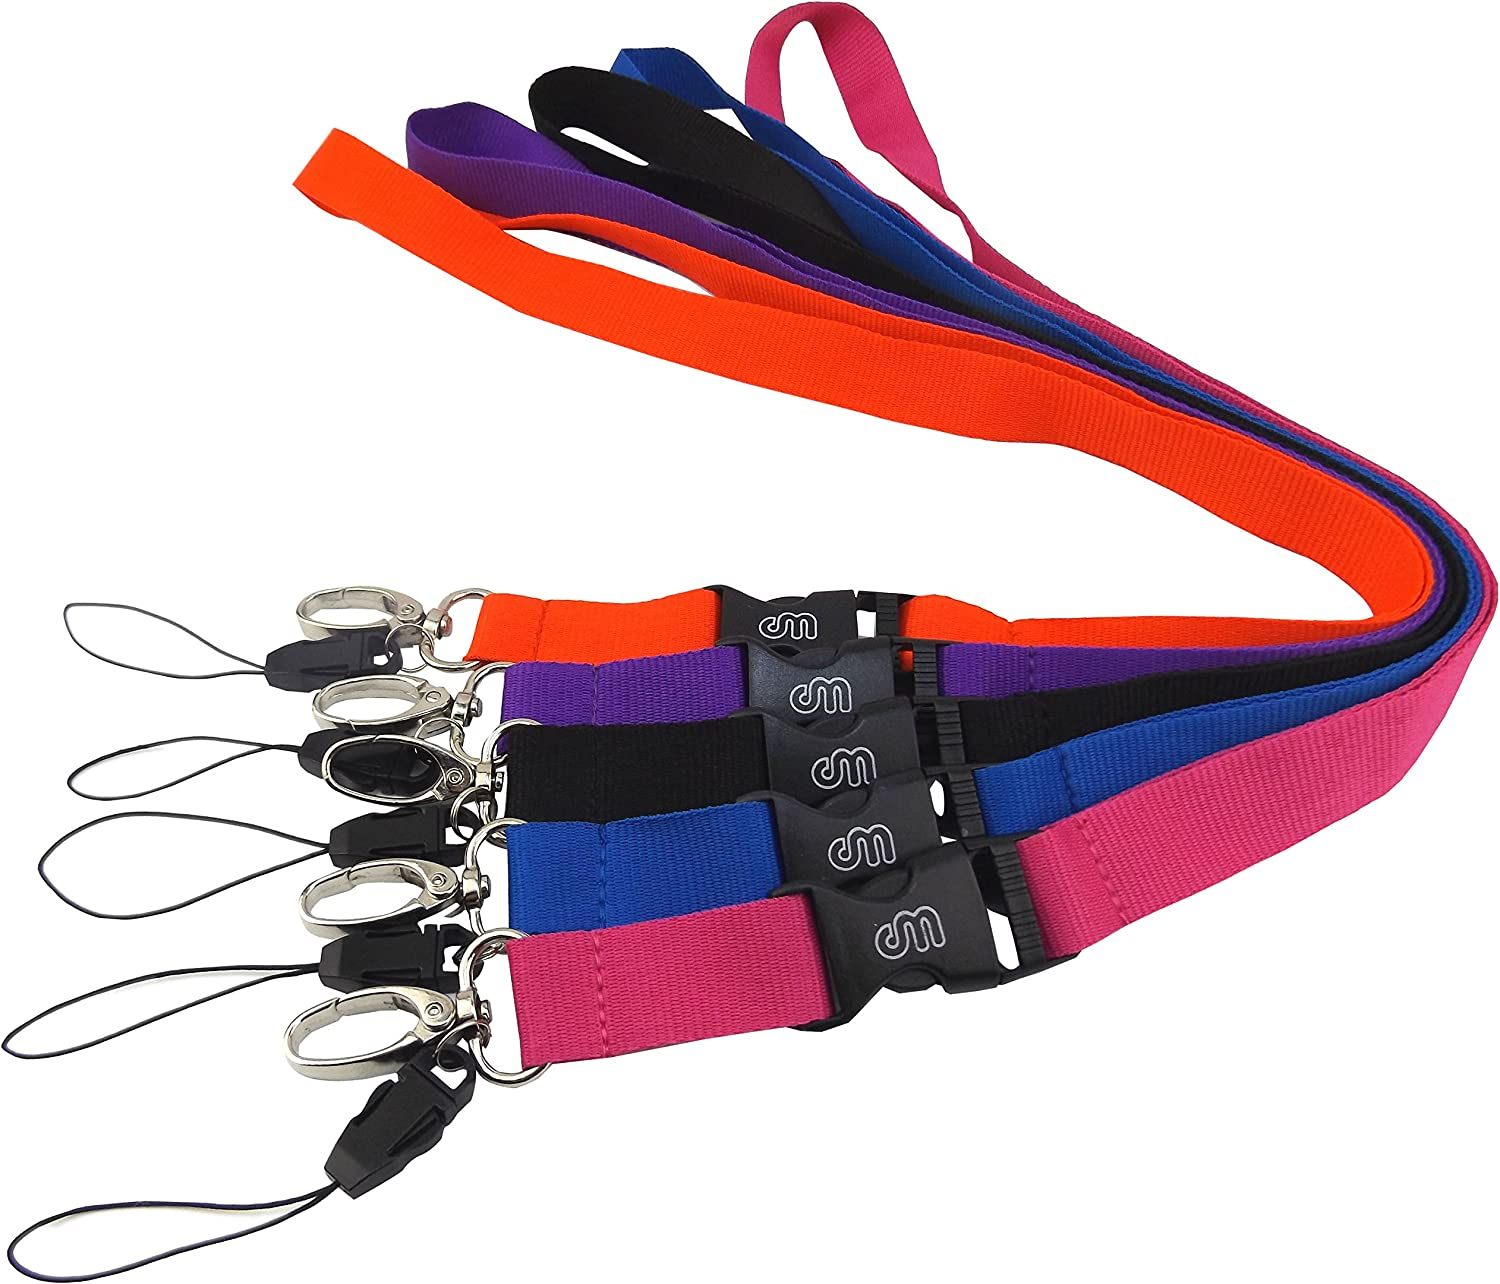 Office Lanyard, Wisdompro 5pcs 23 inch Polyester Neck Strap with Oval Clasp and Detachable Buckle for Phone, Camera, iPod, USB, Key, Keychain, ID Name Tag Badge Holder (Purple Red Hotpink Blue Black)